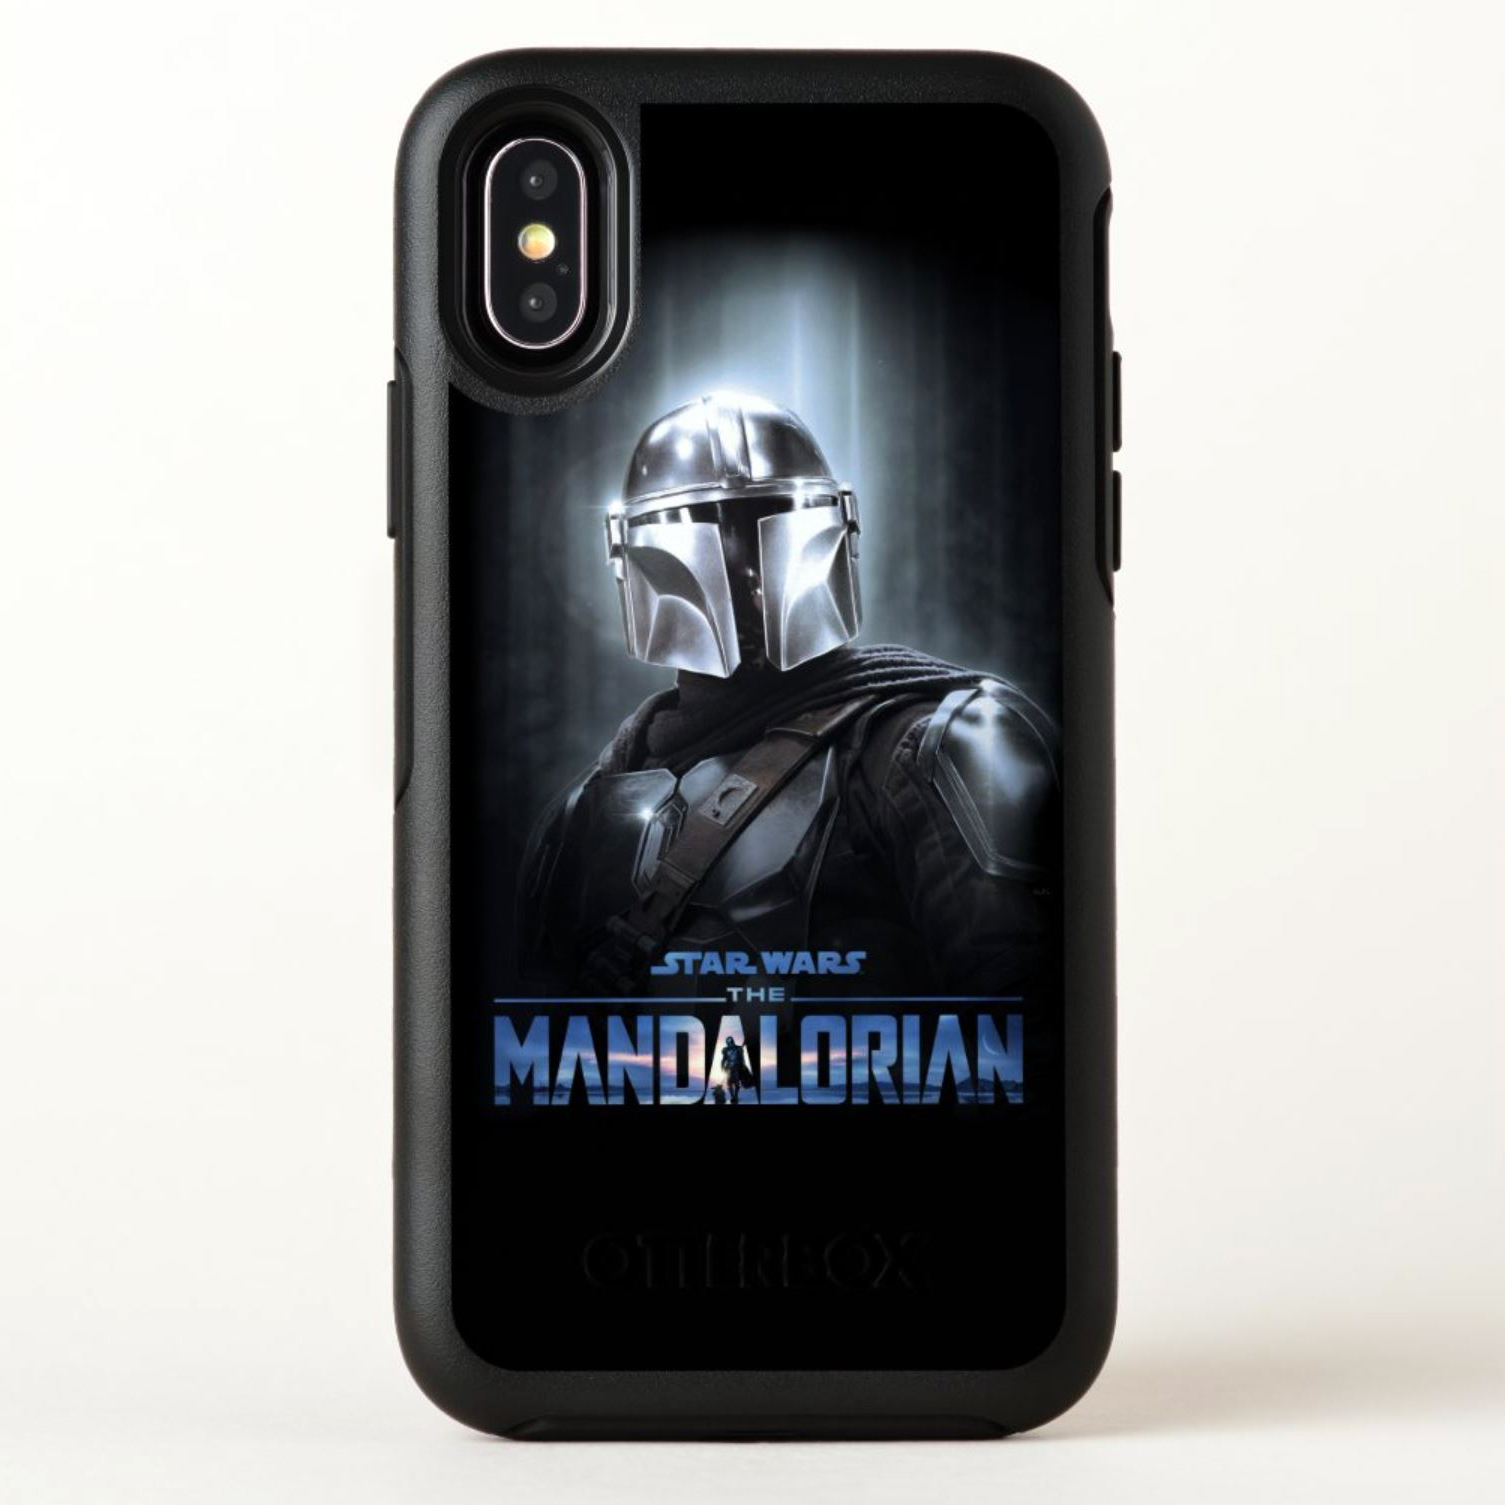 Rebelscum Com Shopdisney The Mandalorian Season 2 Merchandise Now Available